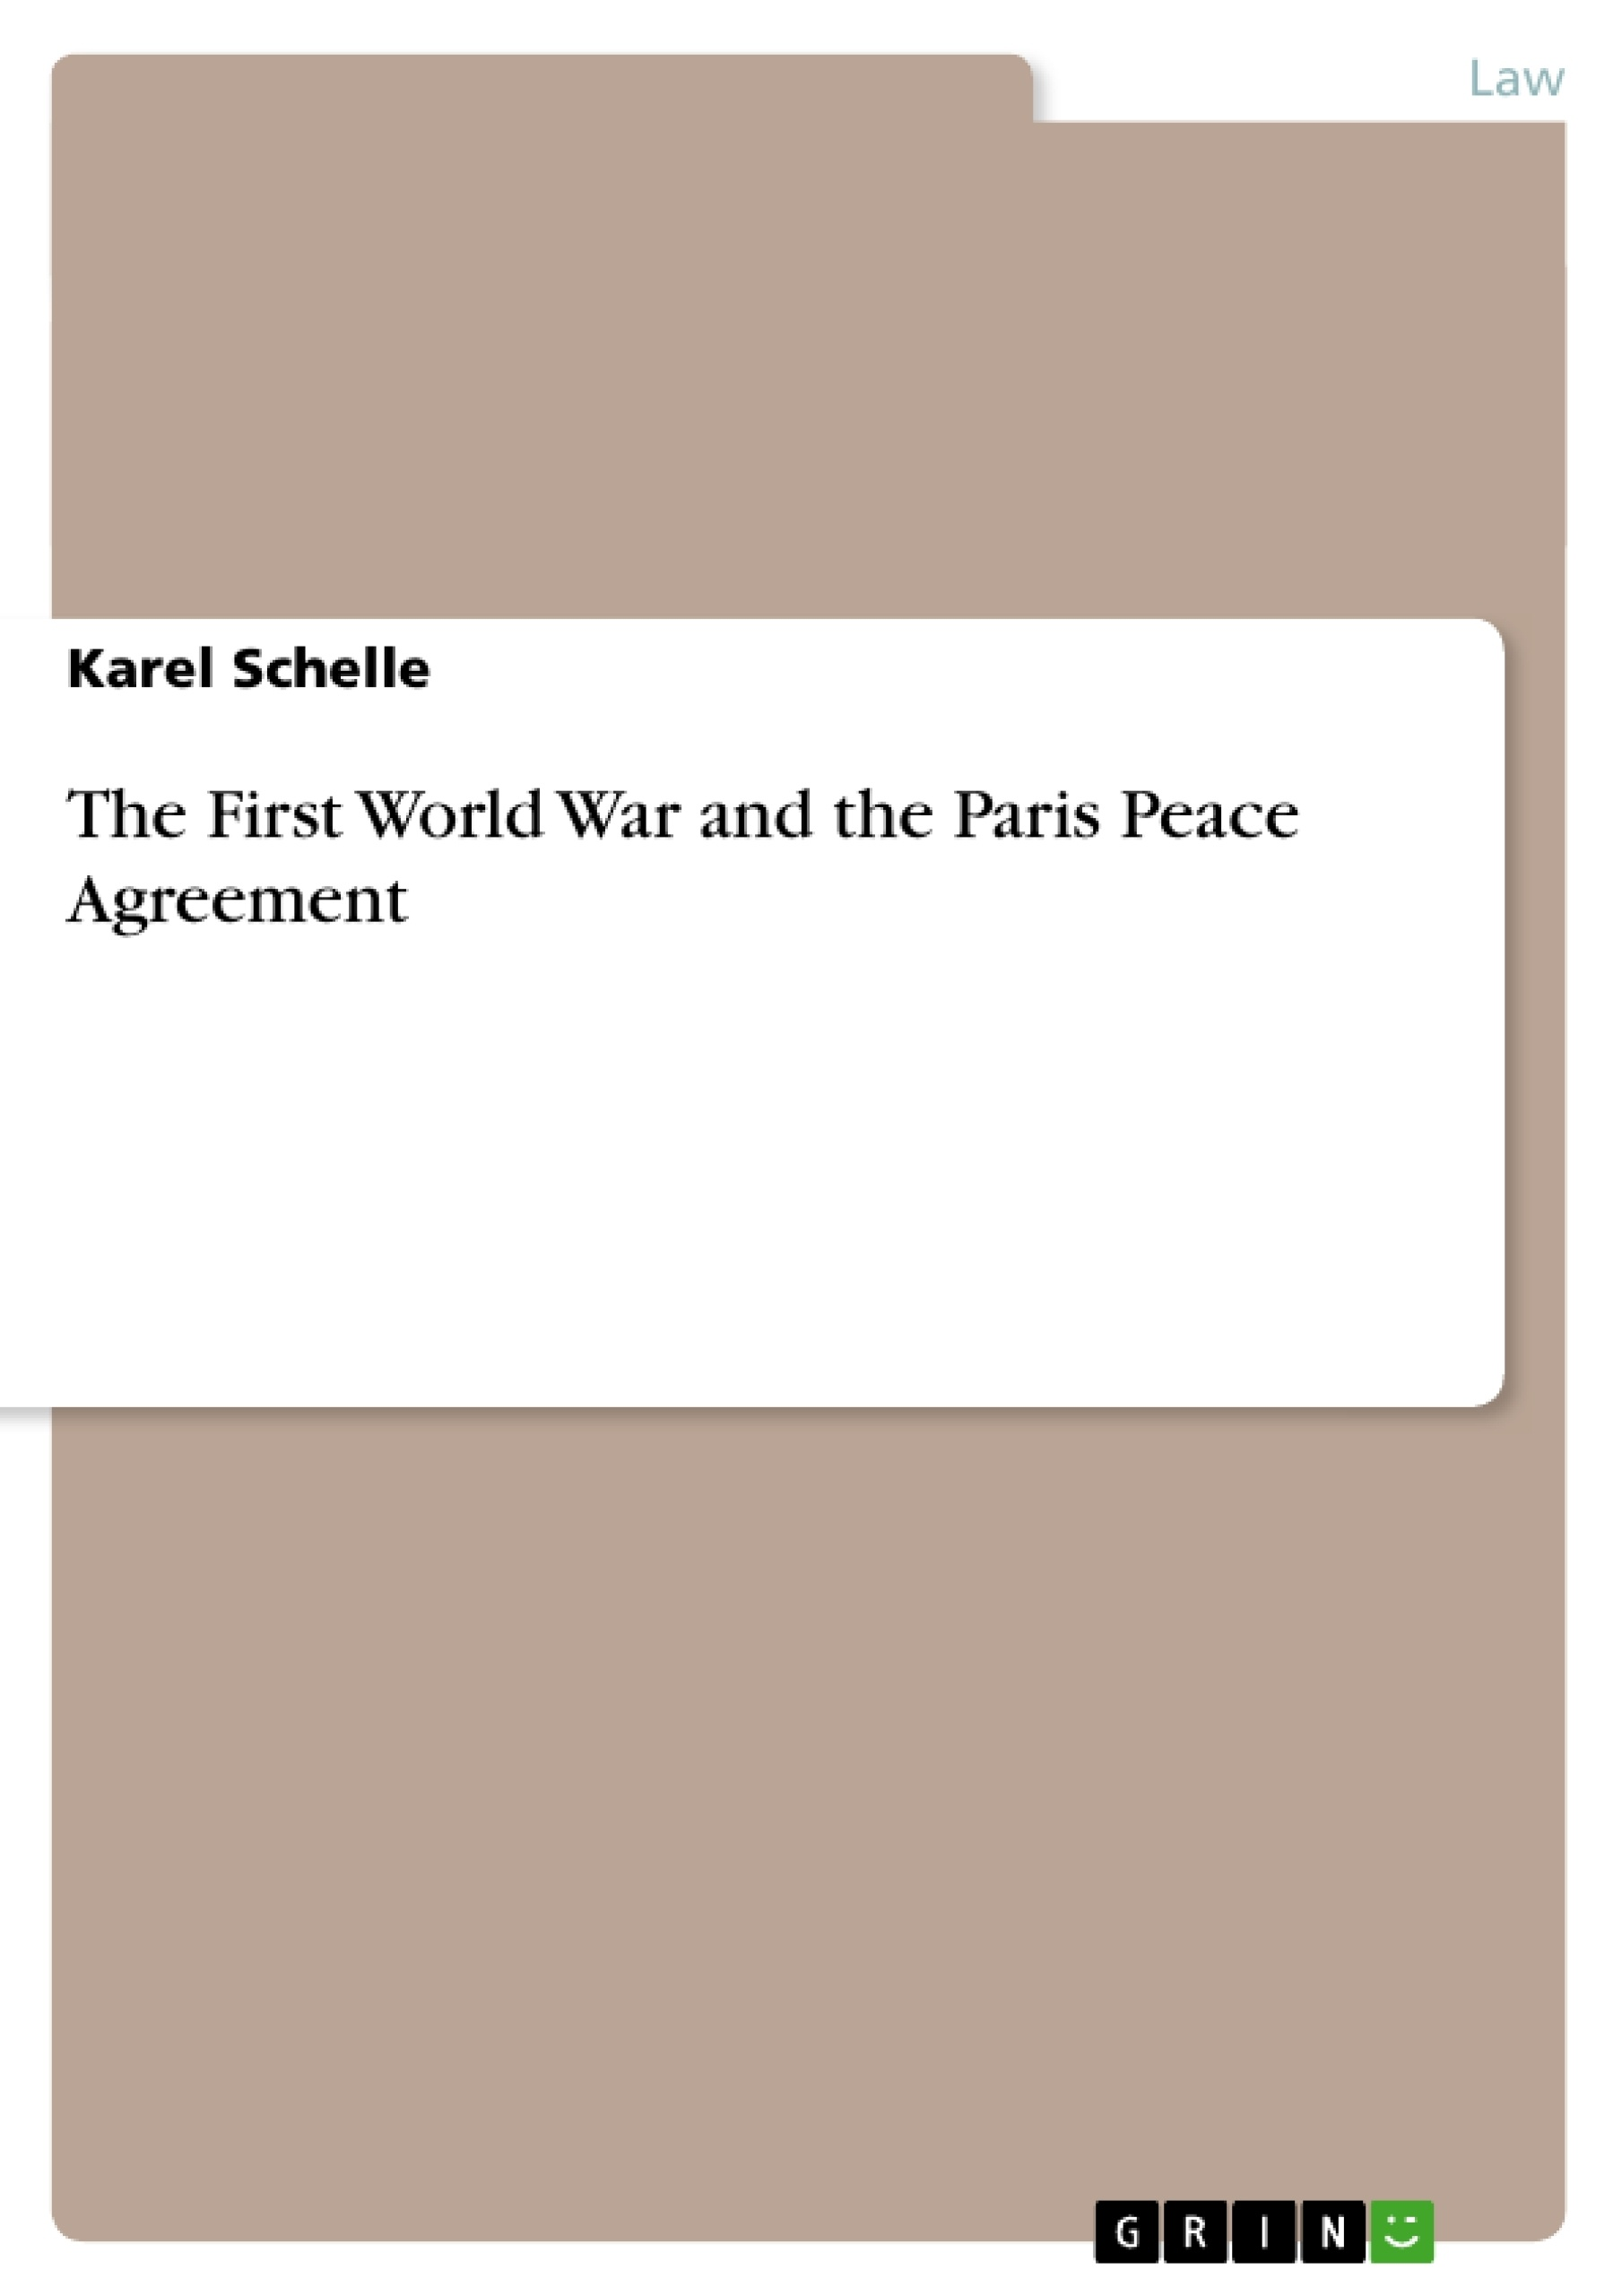 Title: The First World War and the Paris Peace Agreement